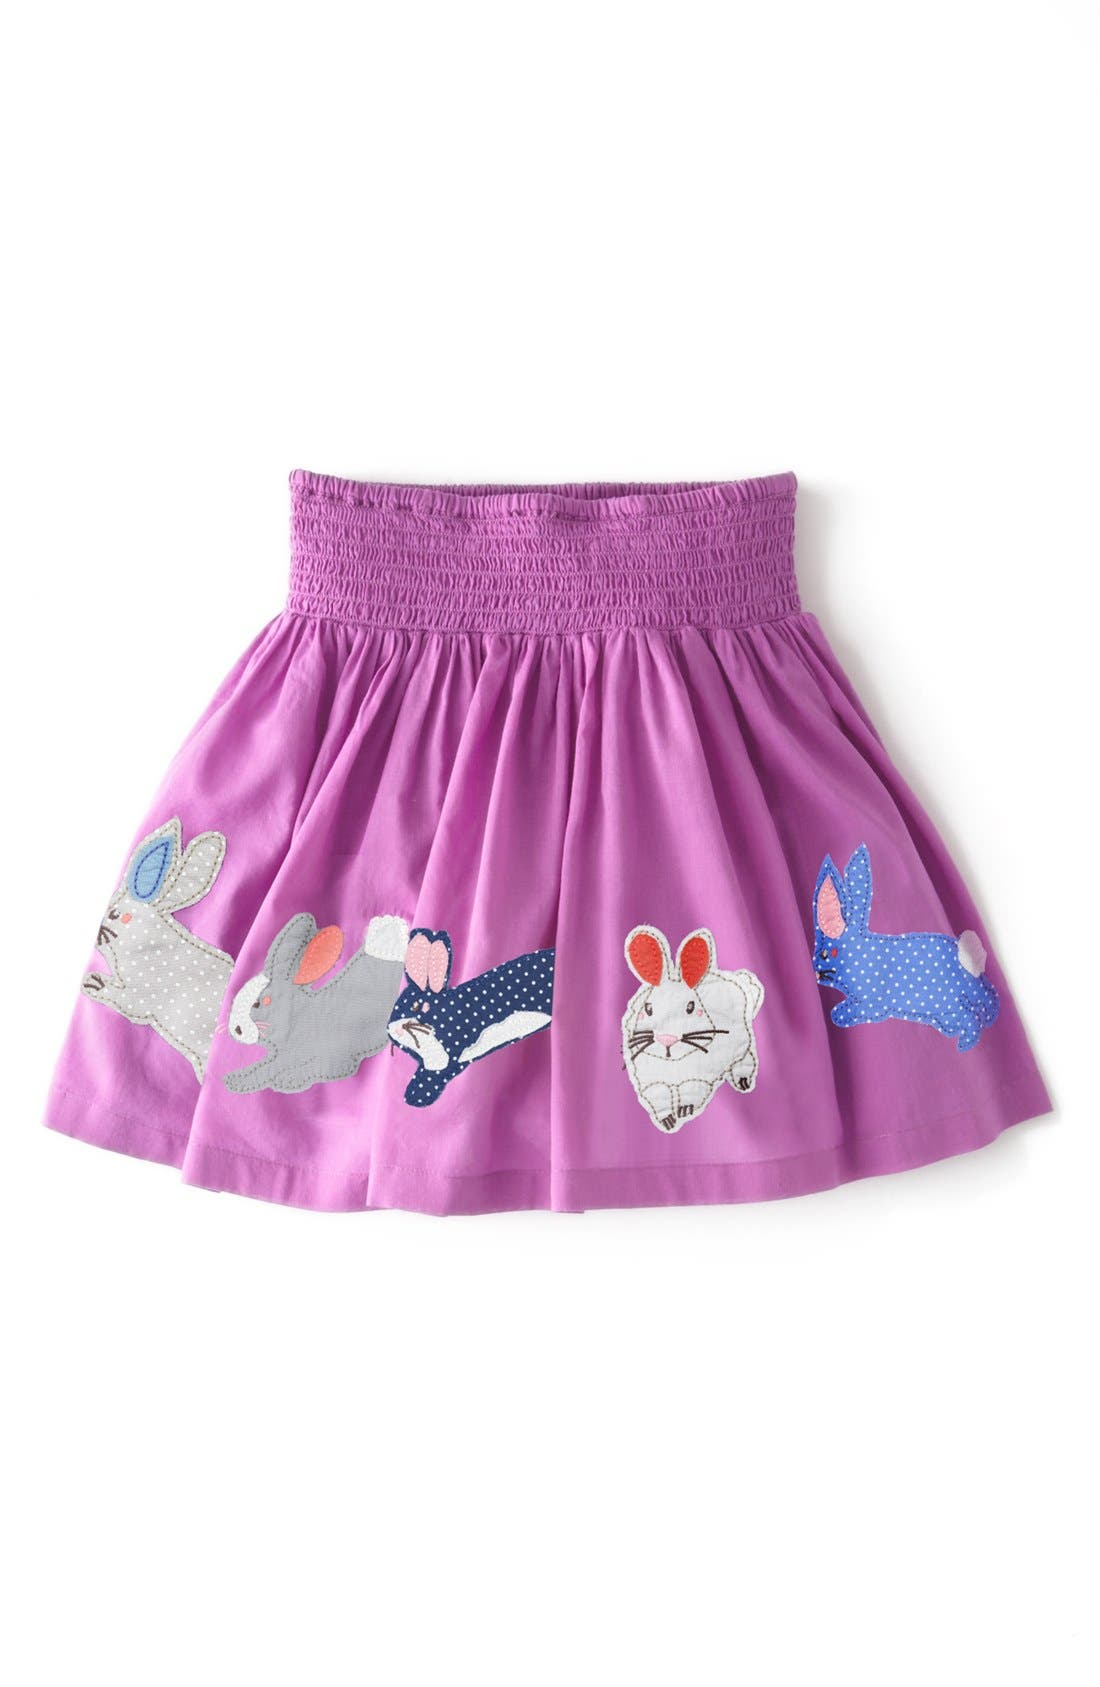 Alternate Image 1 Selected - Mini Boden Fun Appliqué Skirt (Toddler Girls, Little Girls & Big Girls)(Online Only)